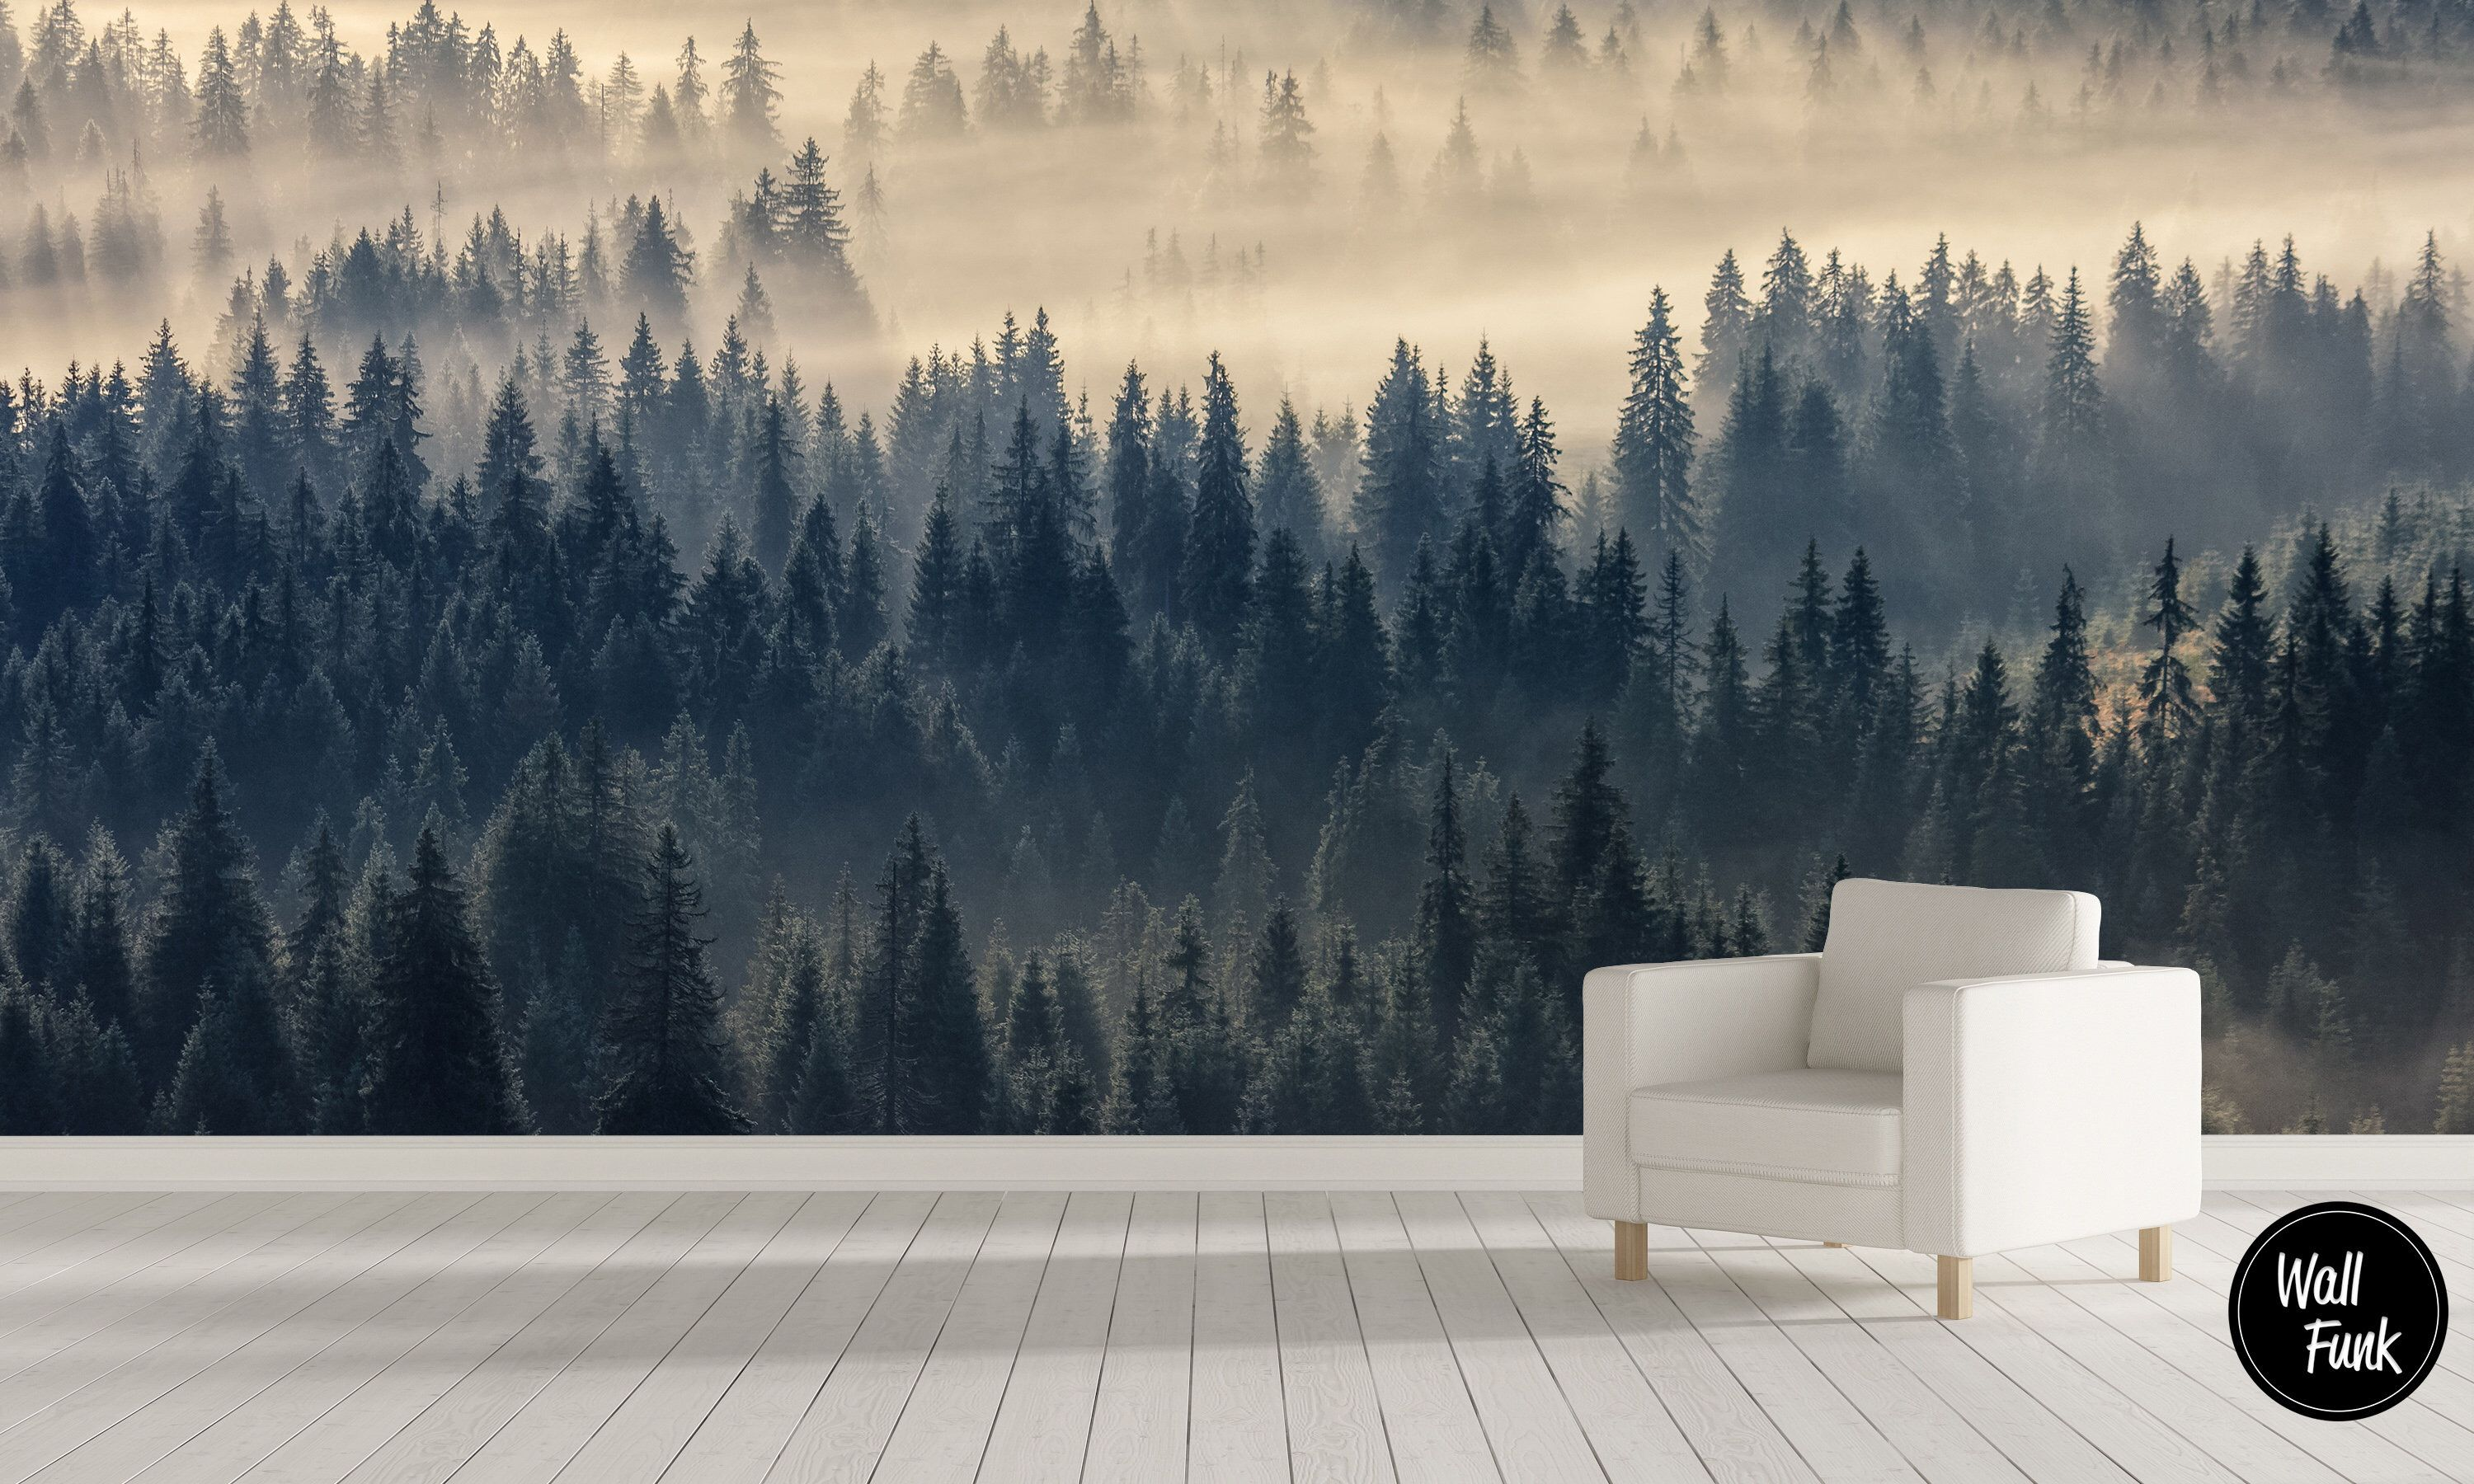 Removable Nature Wallpaper Water Activated Temporary Stick On Wallpaper Wall Mural Forest Forest Murals Removable Wallpaper Na 03 Wall Wallpaper Forest Mural Nature Wallpaper